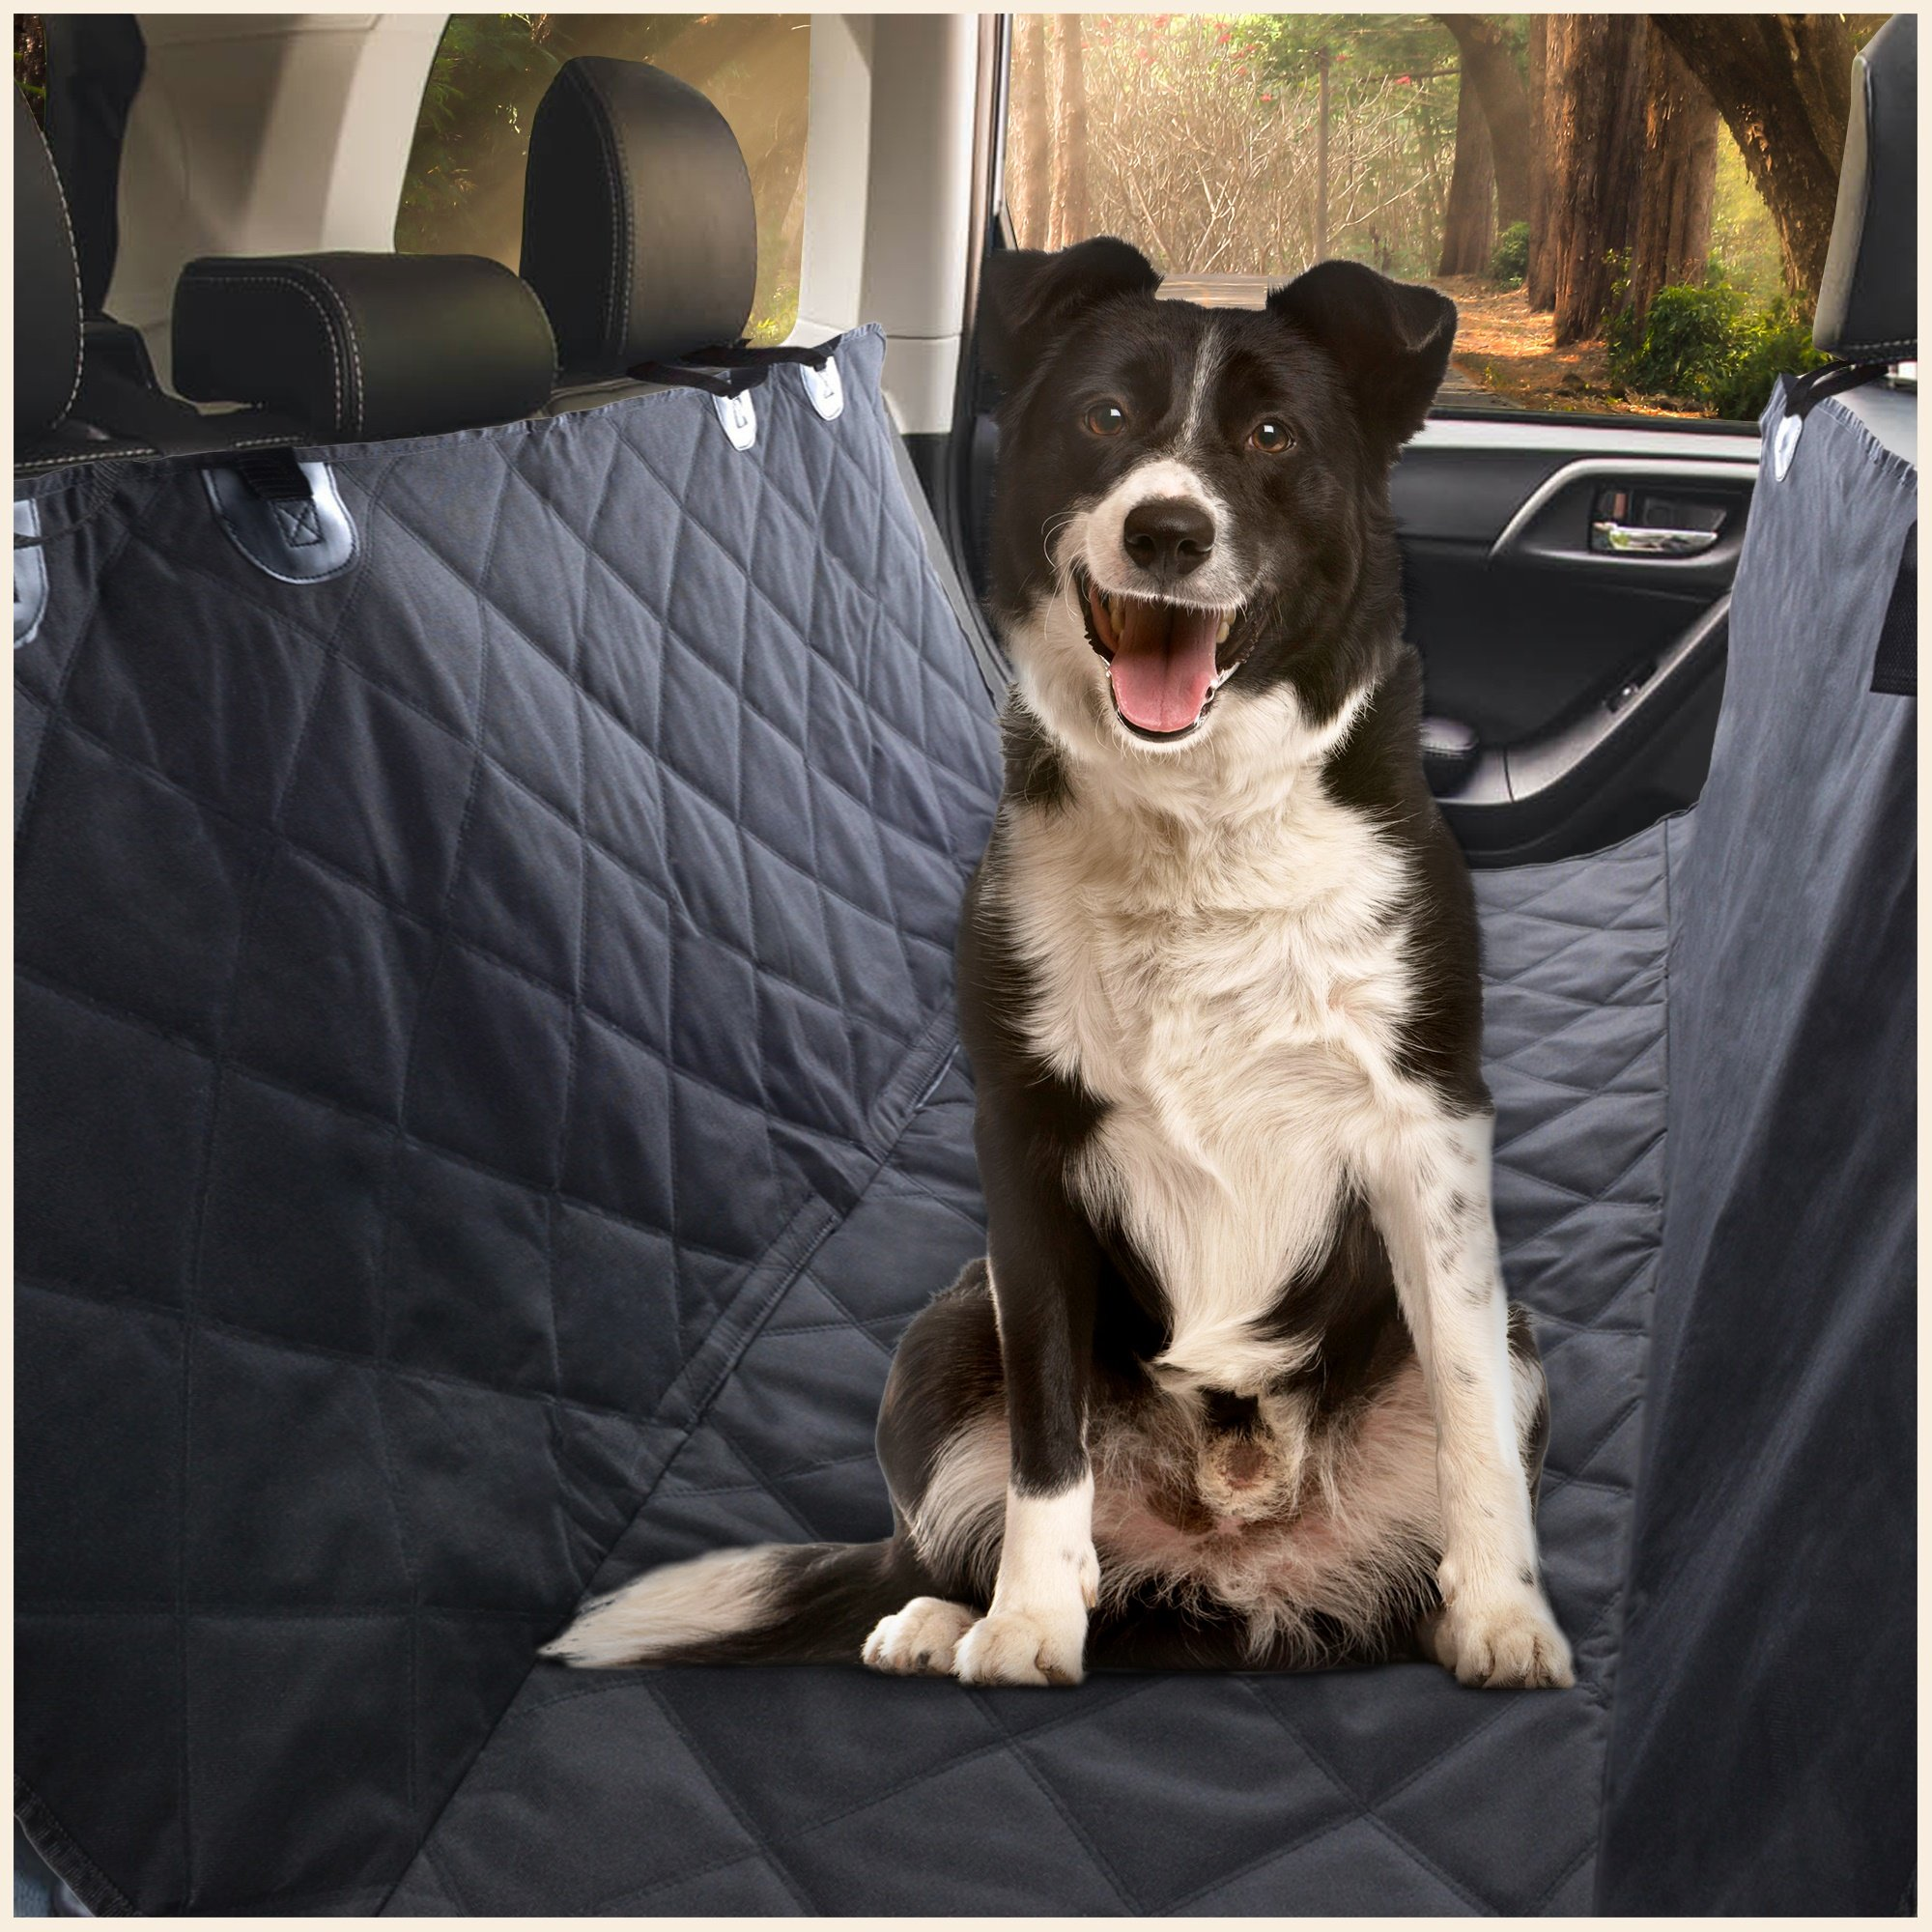 E Ess & Craft Dog Hammock - Waterproof Pet Car Rear/Back Seat Cover, Hammock and Standard, Quilted, Triple Layered with Seat Belt Slots, Black